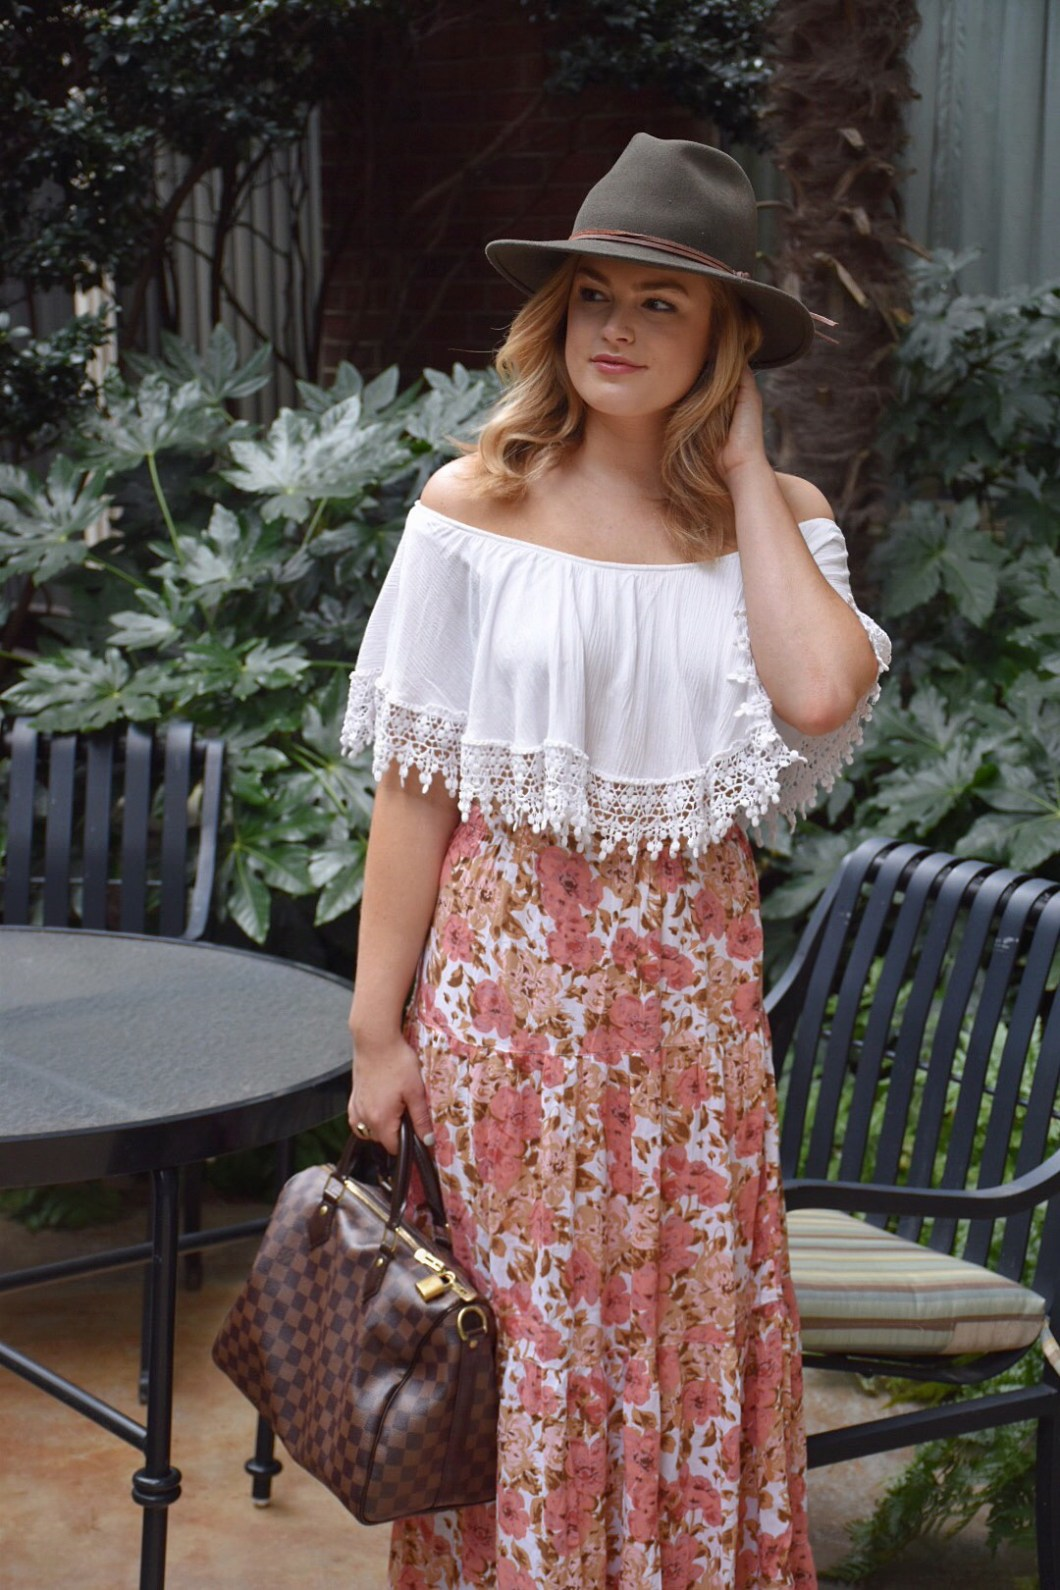 Transitional outfit from summer to fall